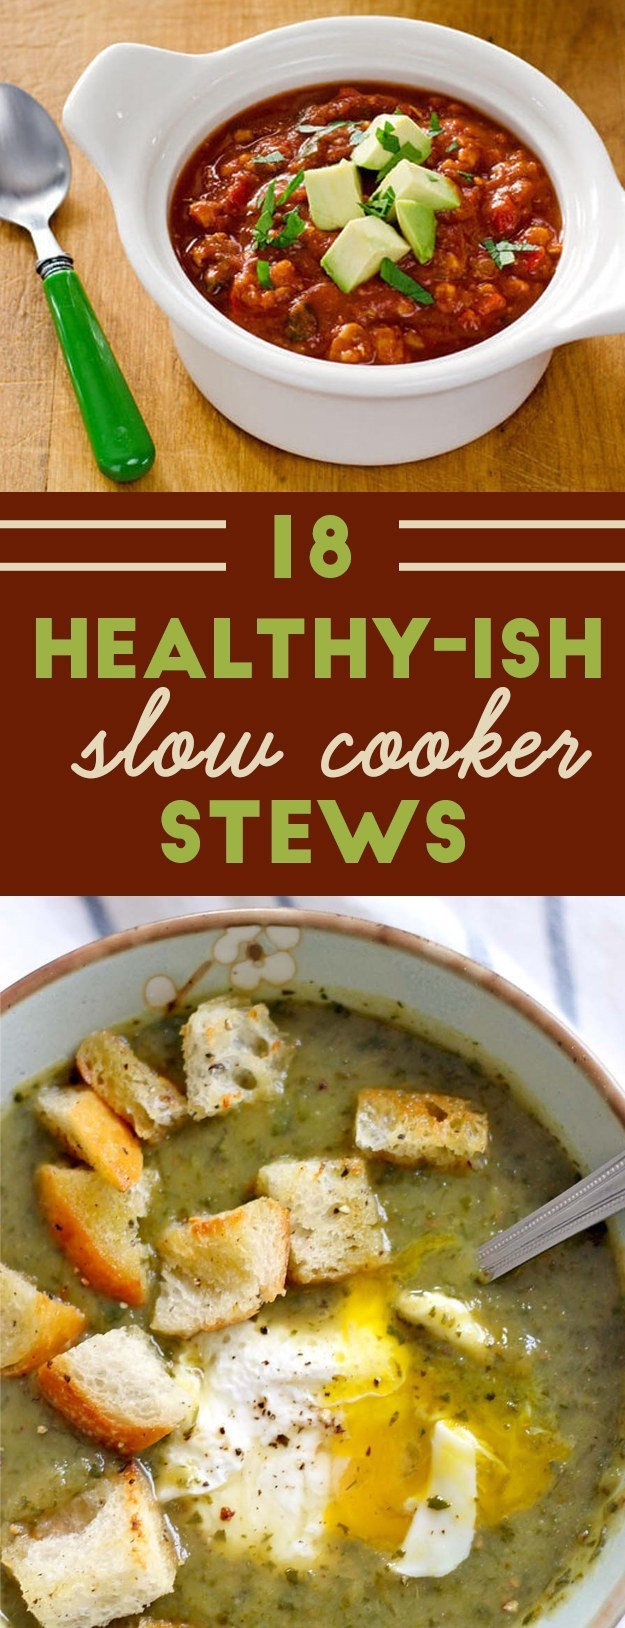 18 Hot And Delicious Slow Cooker Stews